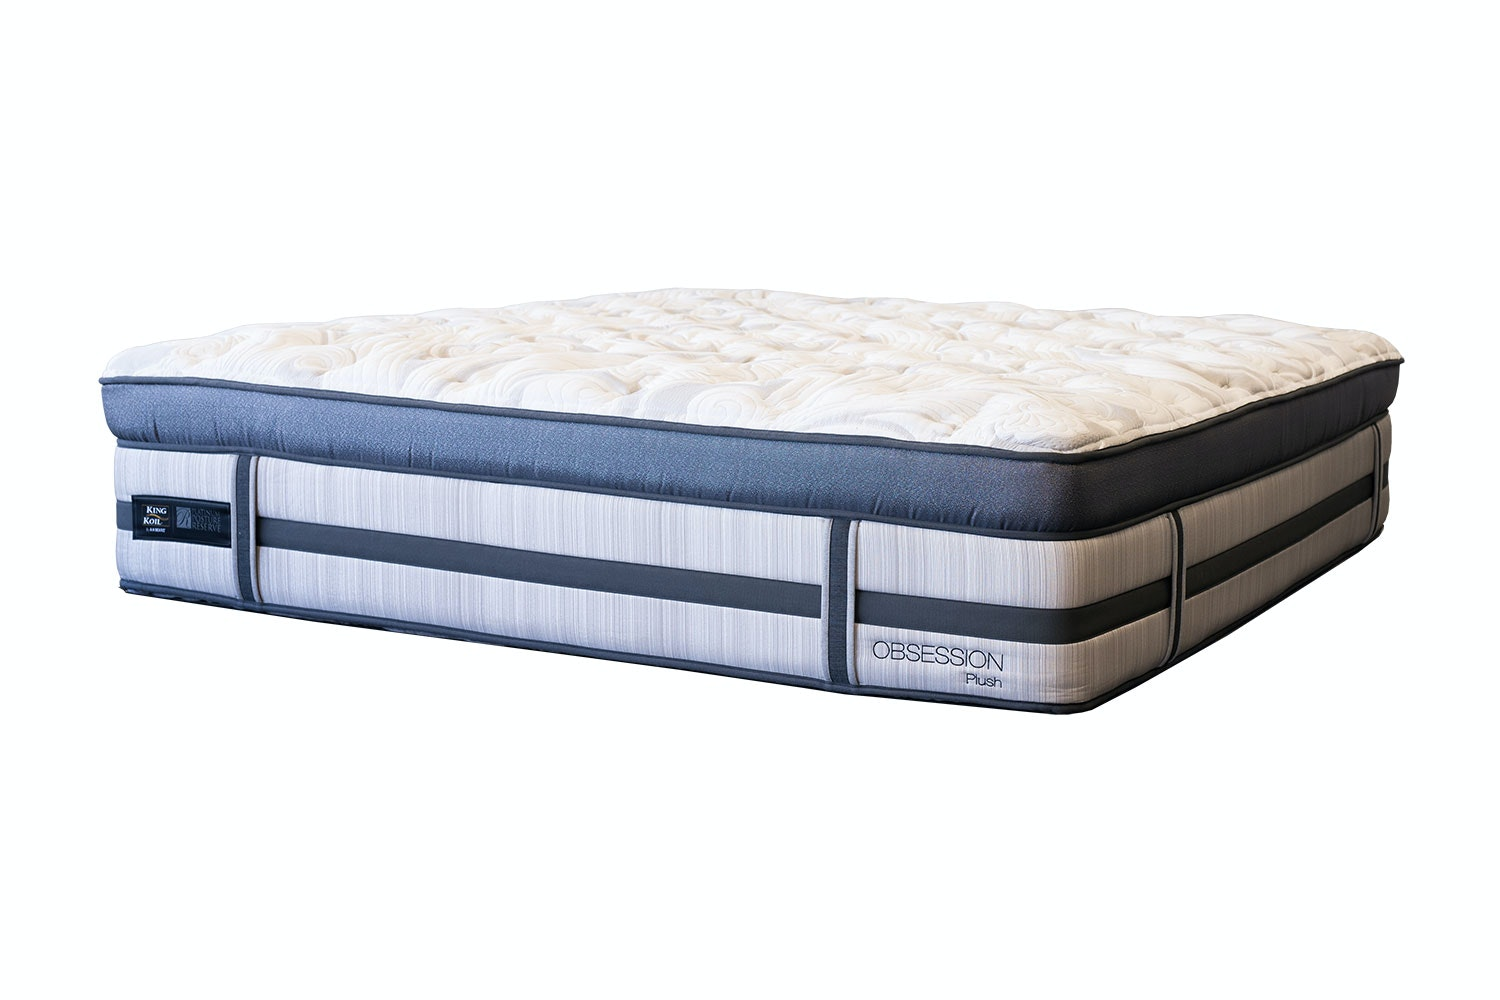 Obsession Plush Long Single Mattress by King Koil